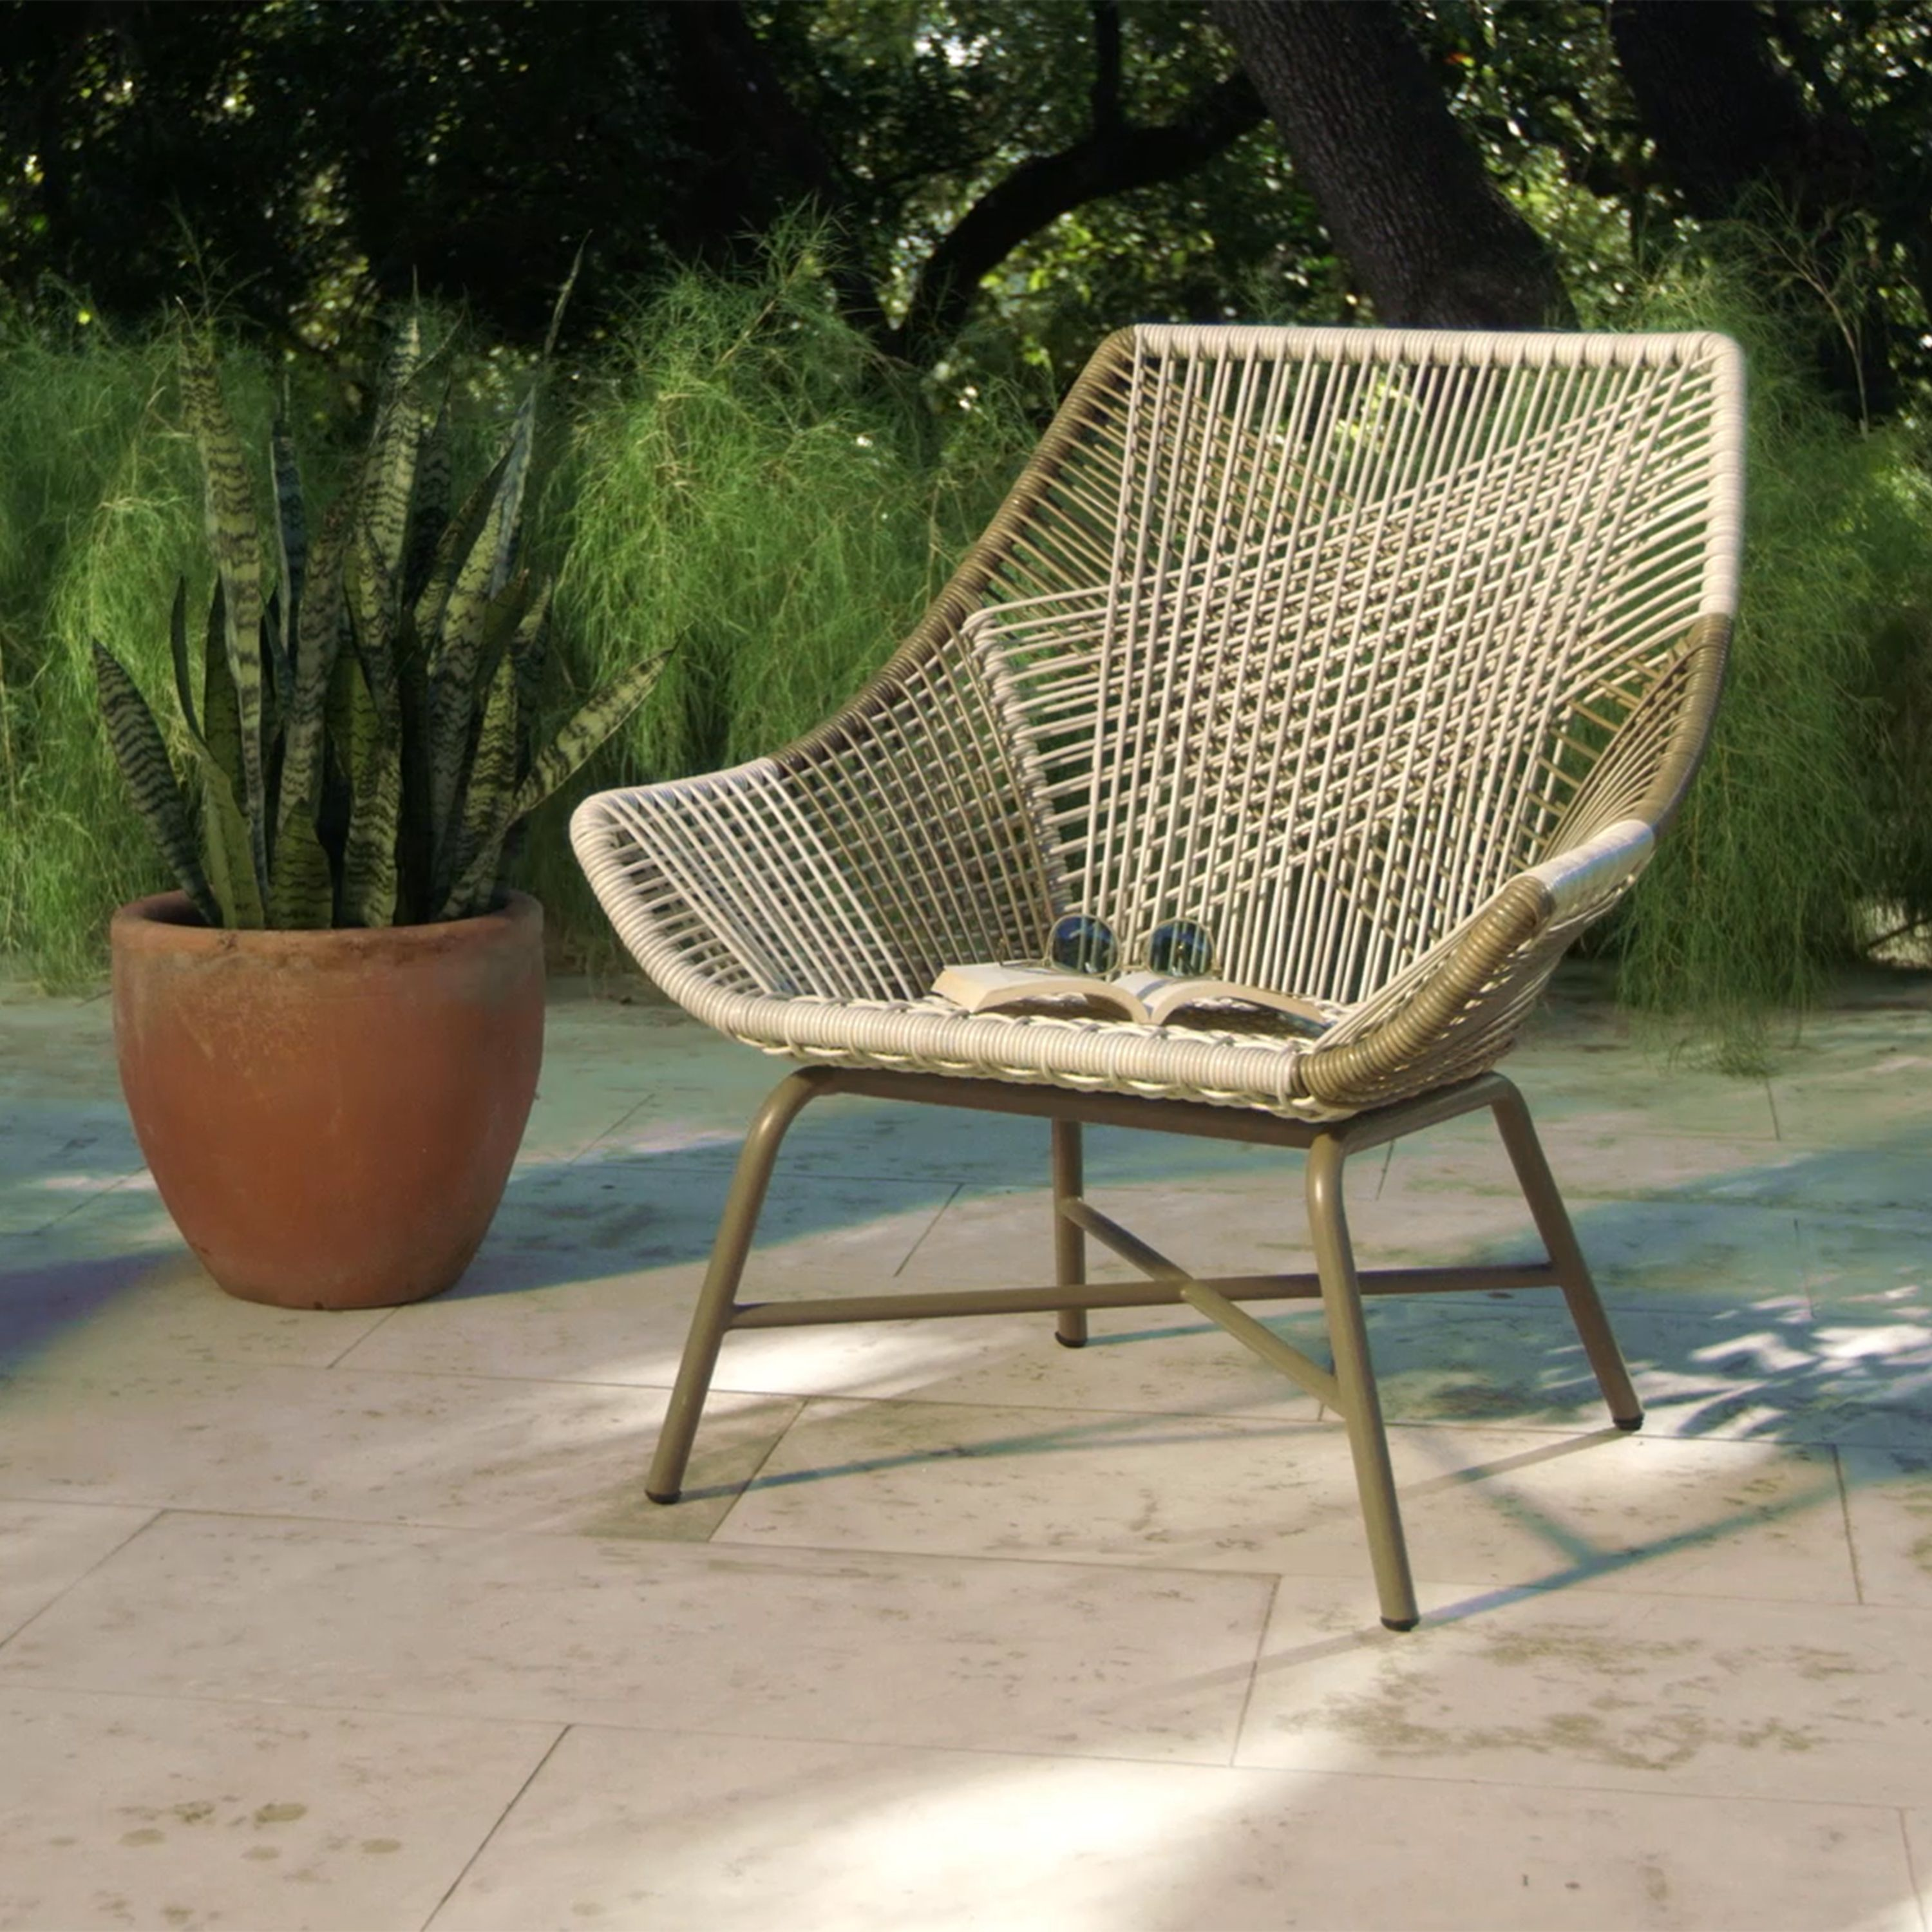 Woven Plastic Garden Chairs Zero G Chair Standing On Iron Legs Our Lounge Is Crafted Of